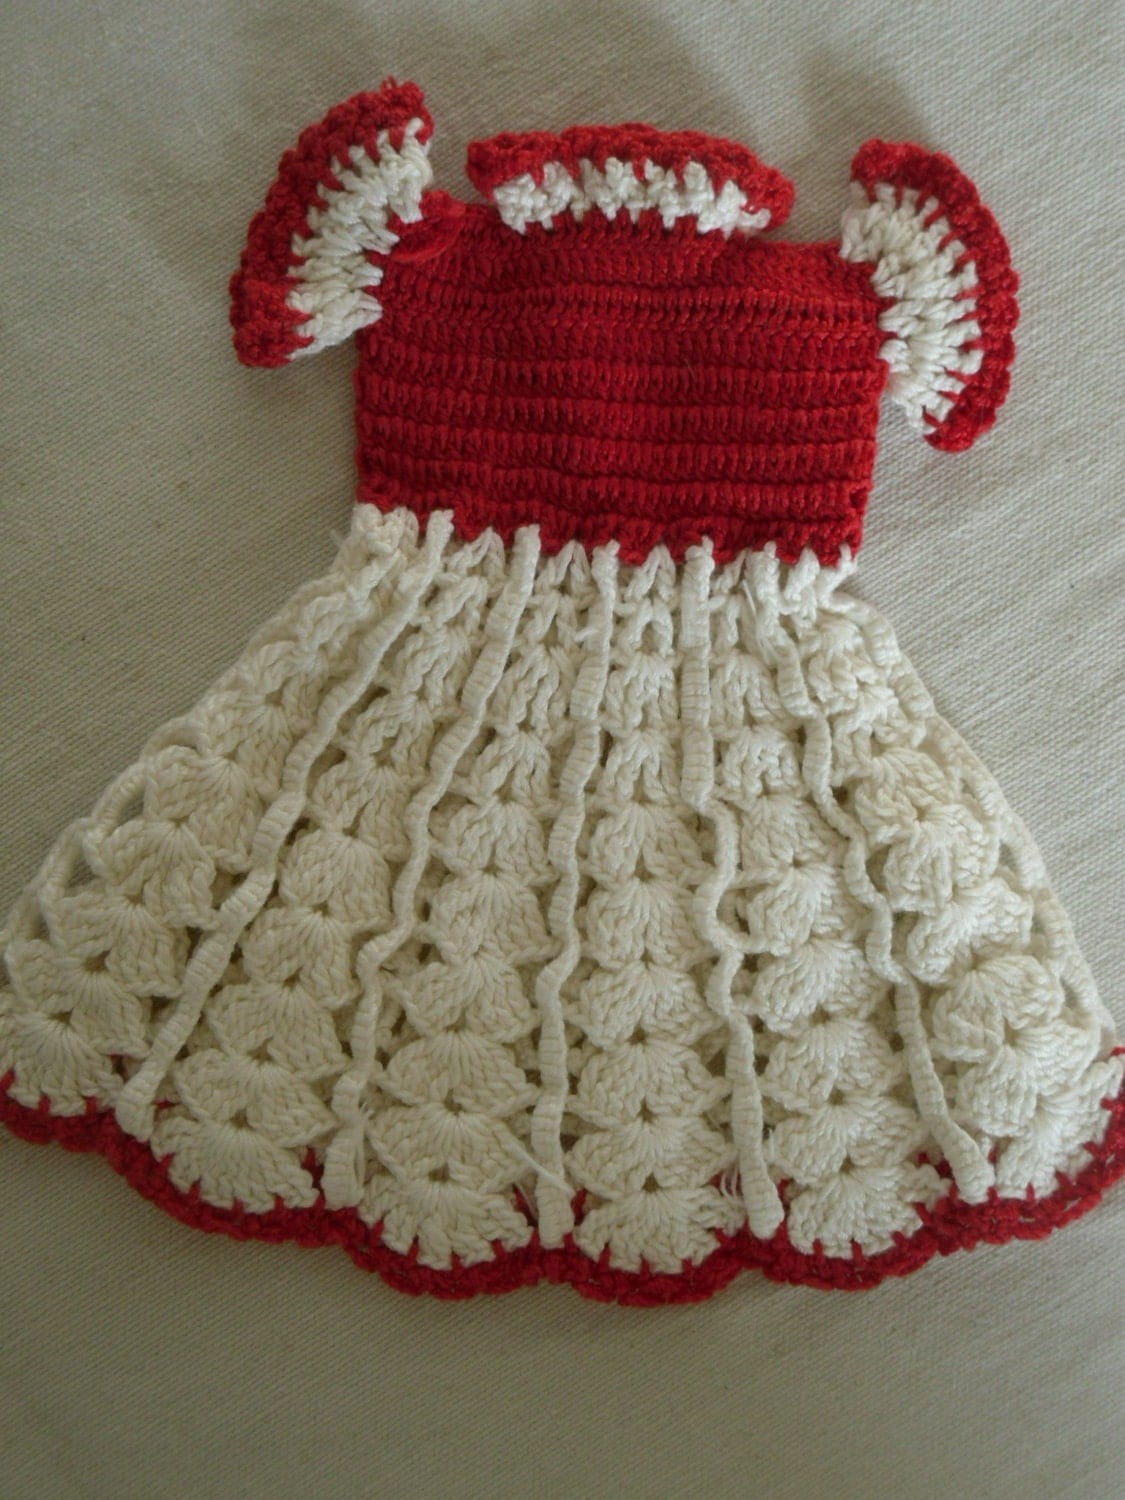 Crochet Patterns Doll Clothes : Free Doll Clothes Patterns Doll Patterns Free Vintage Crochet